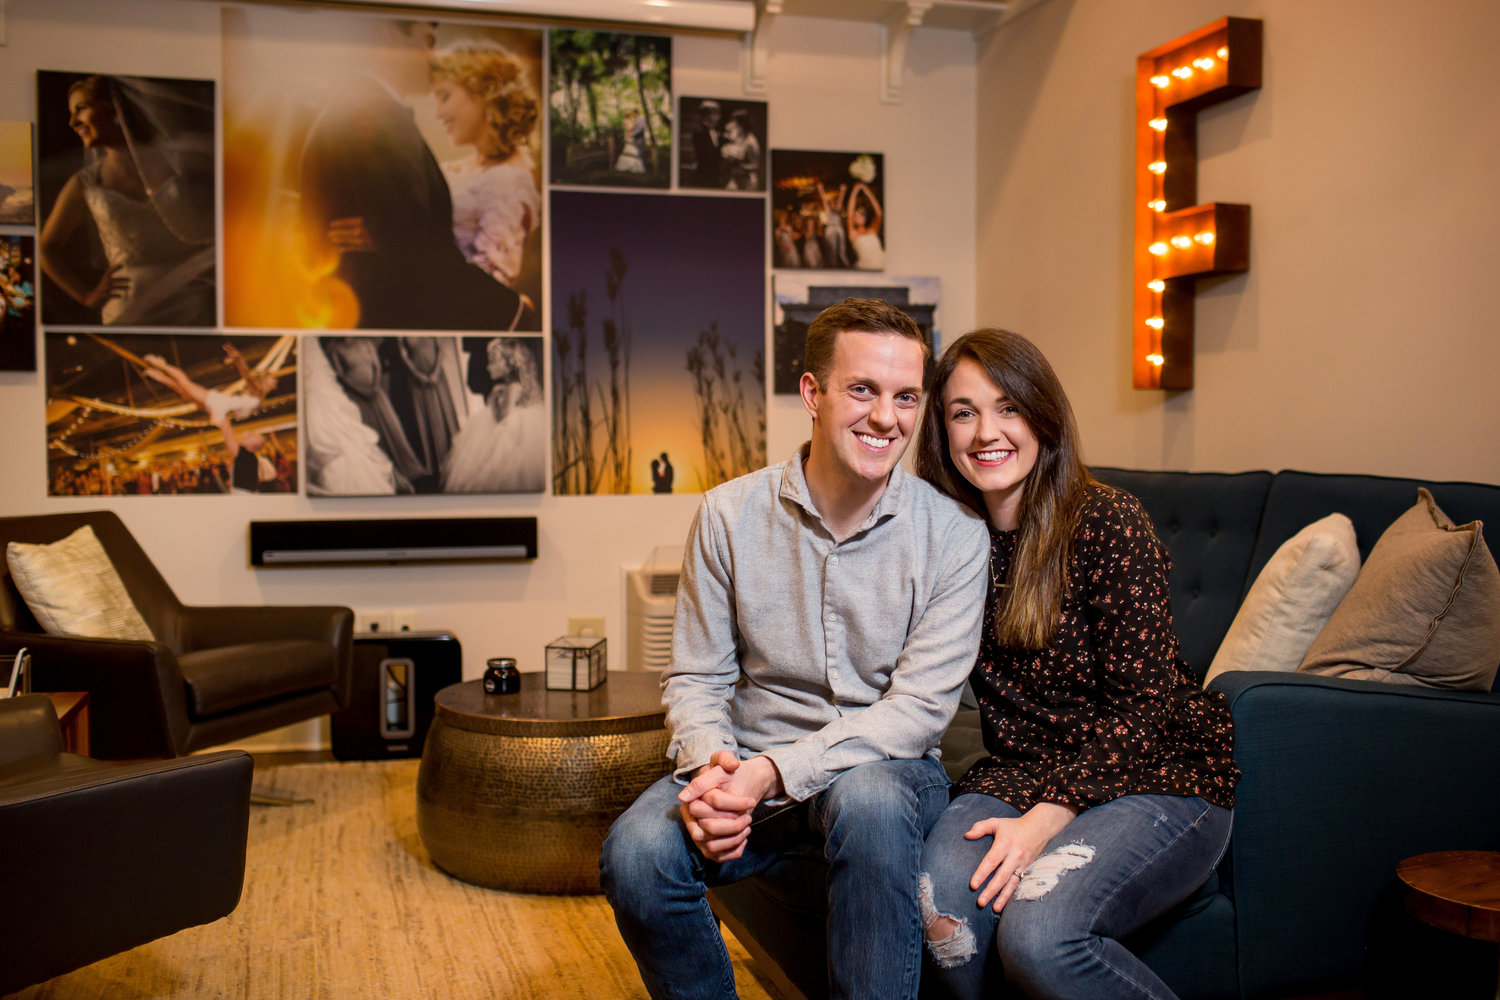 Robby and Jess Followell in the Followell Fotography Studio. Photo by Chase Rich.